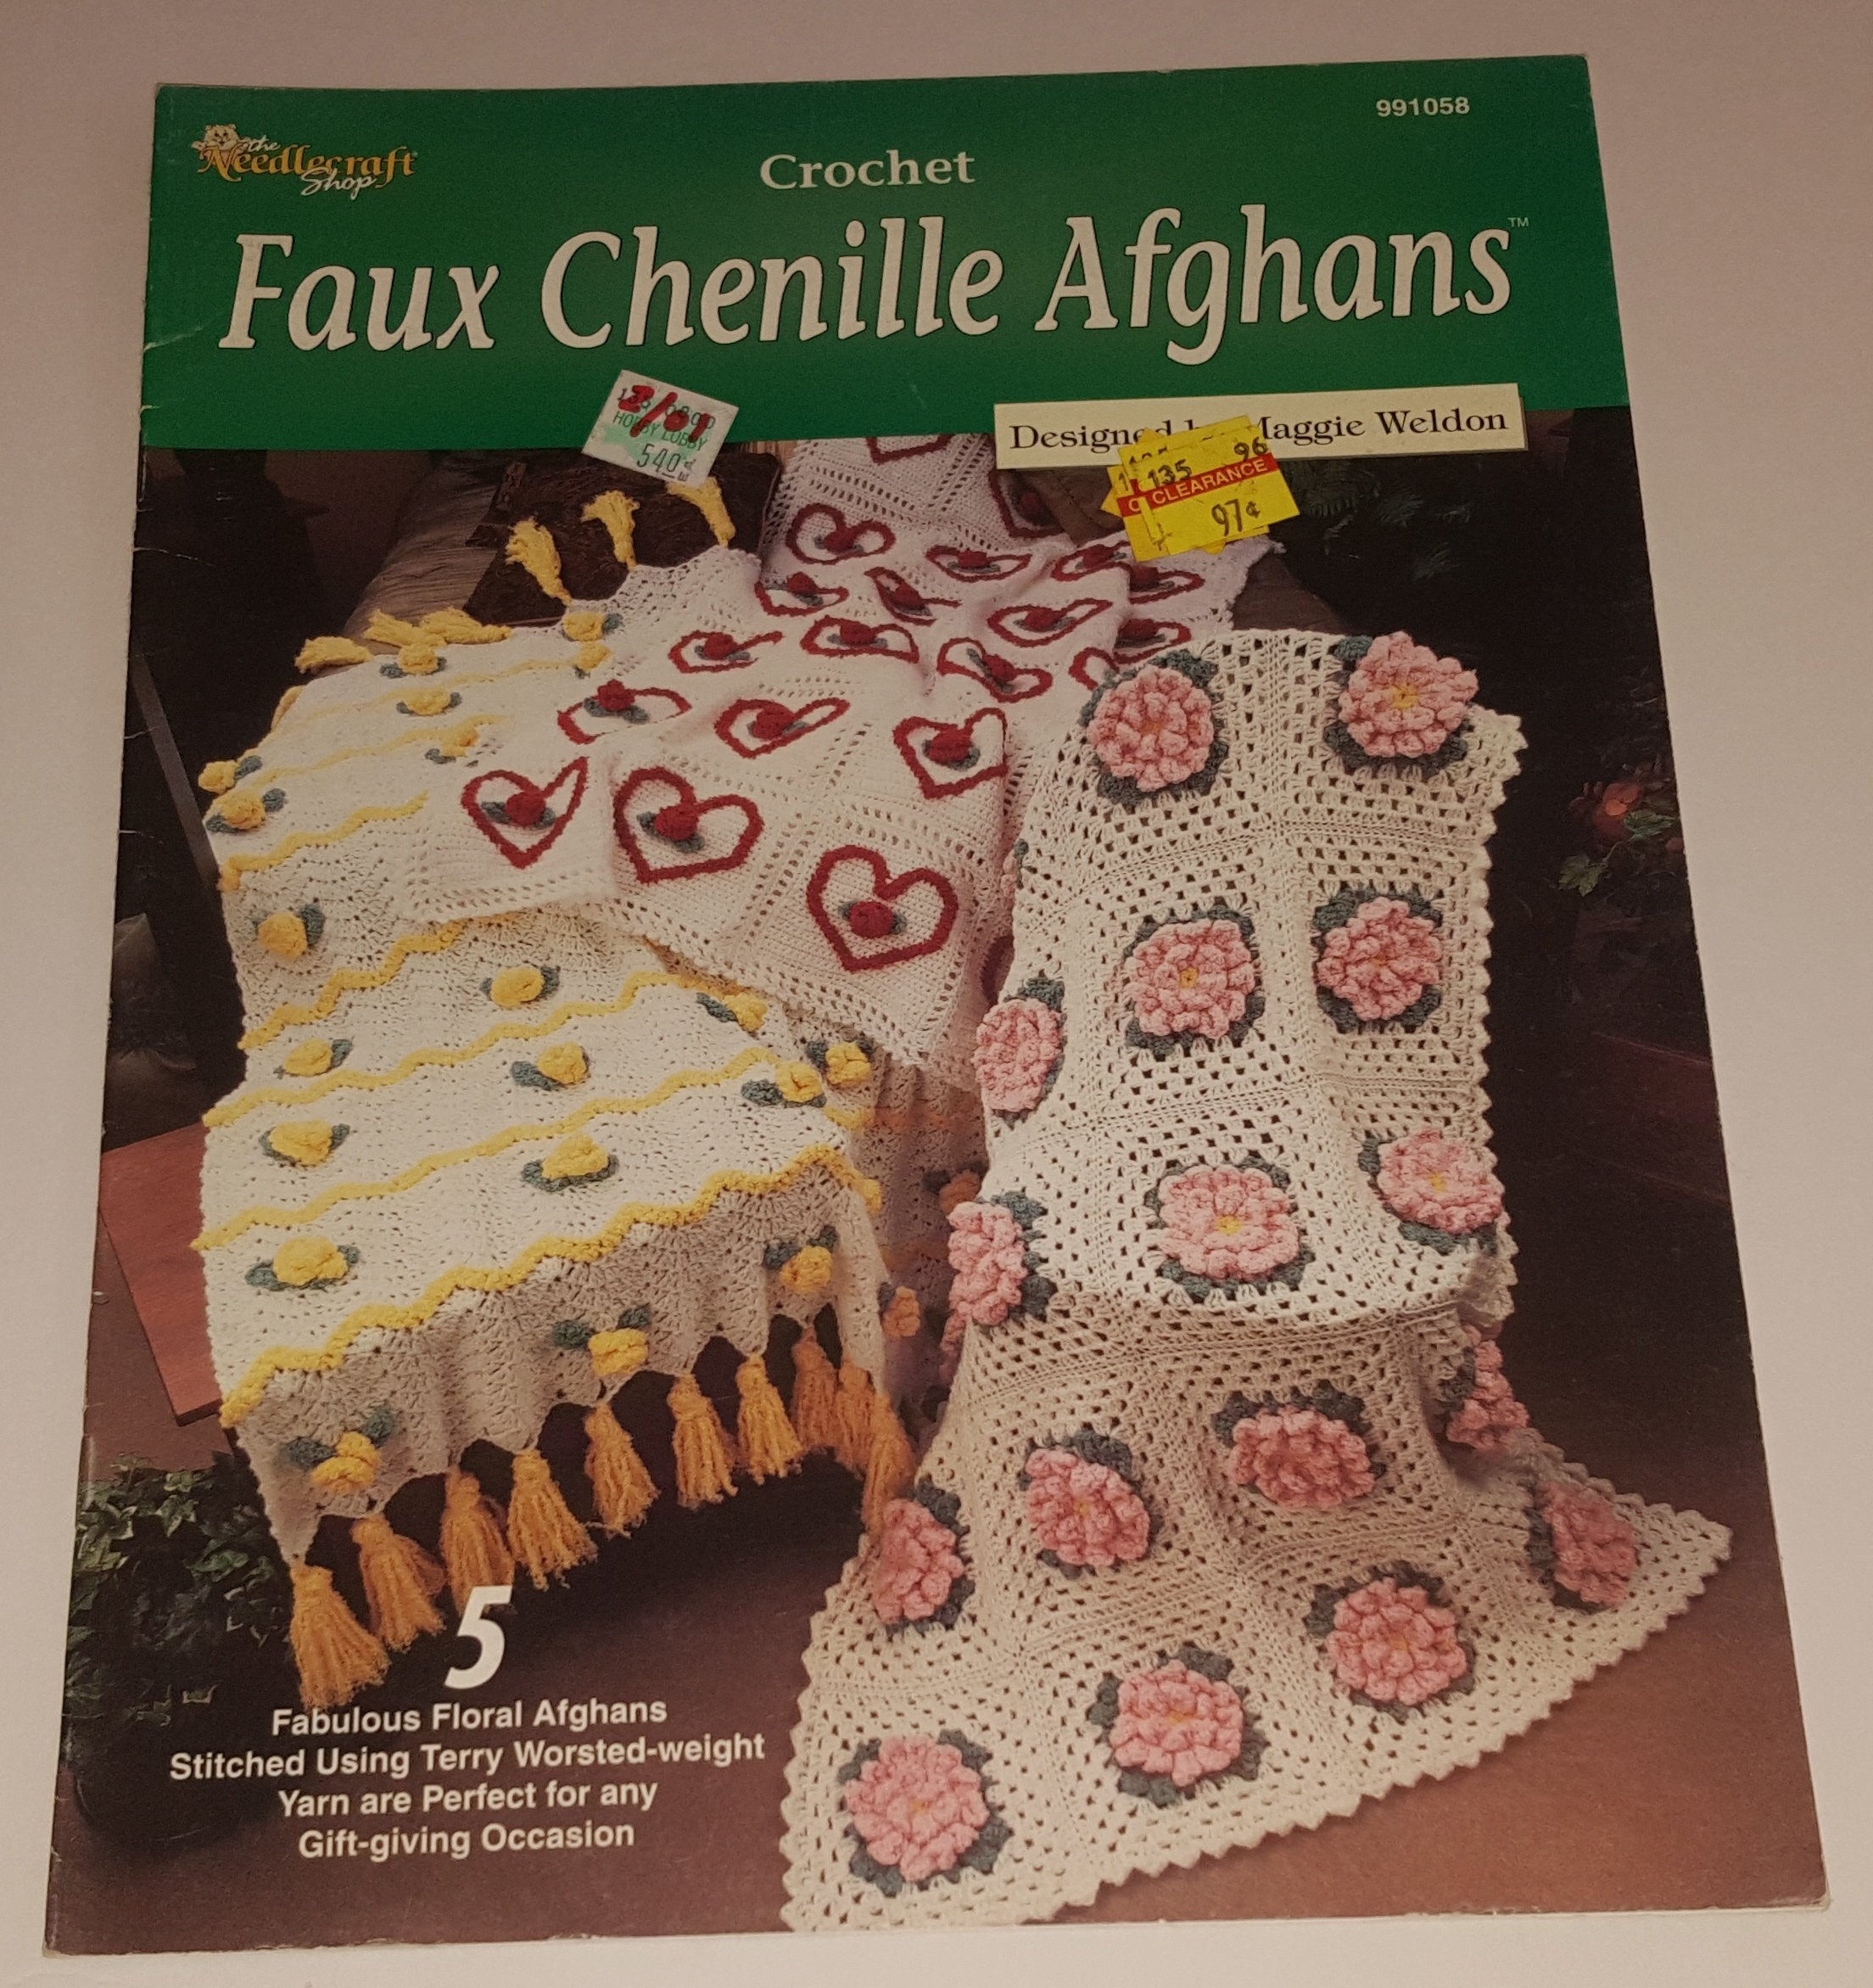 Faux Chenille Aghans Crochet Pattern Book For 5 Floral Afghans